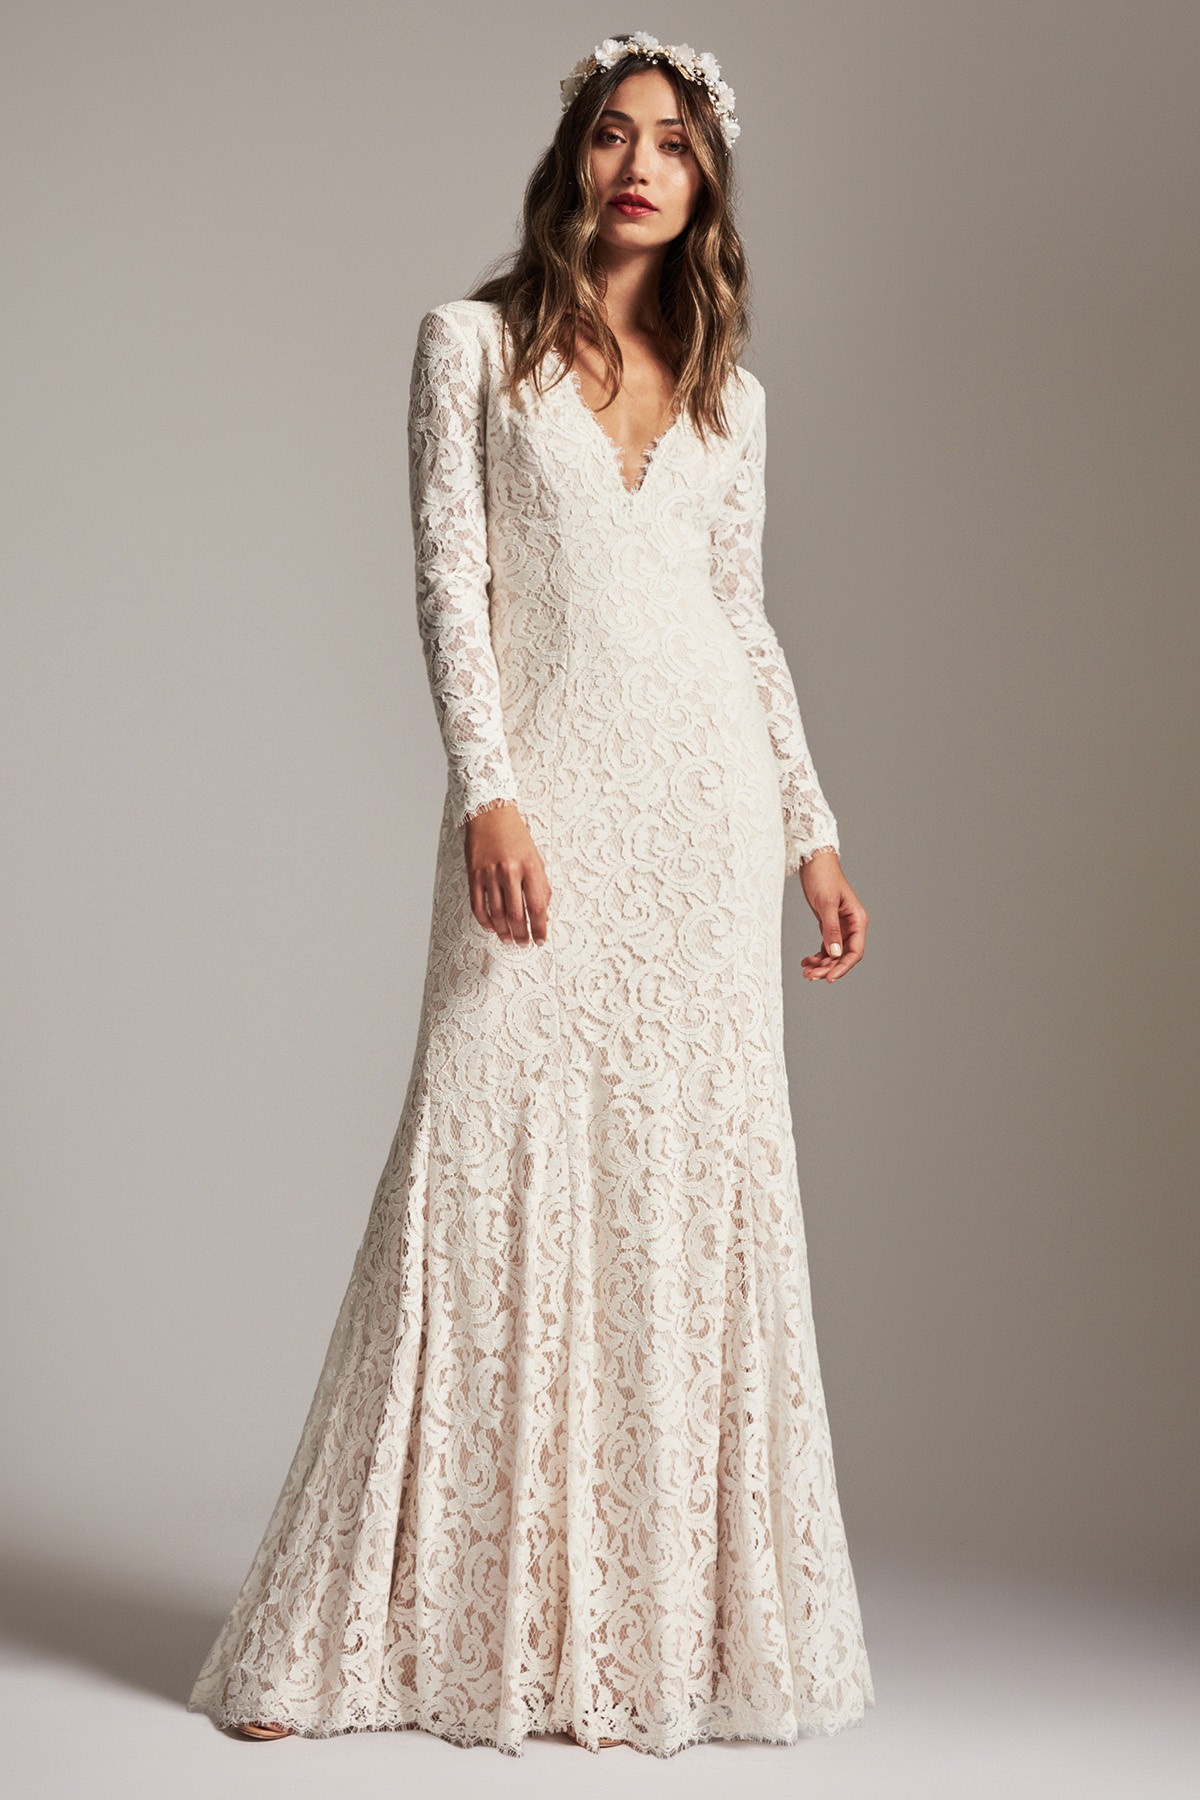 179138e3697 Tadashi Shoji Sample Wedding Dress on Sale 54% Off - Stillwhite ...